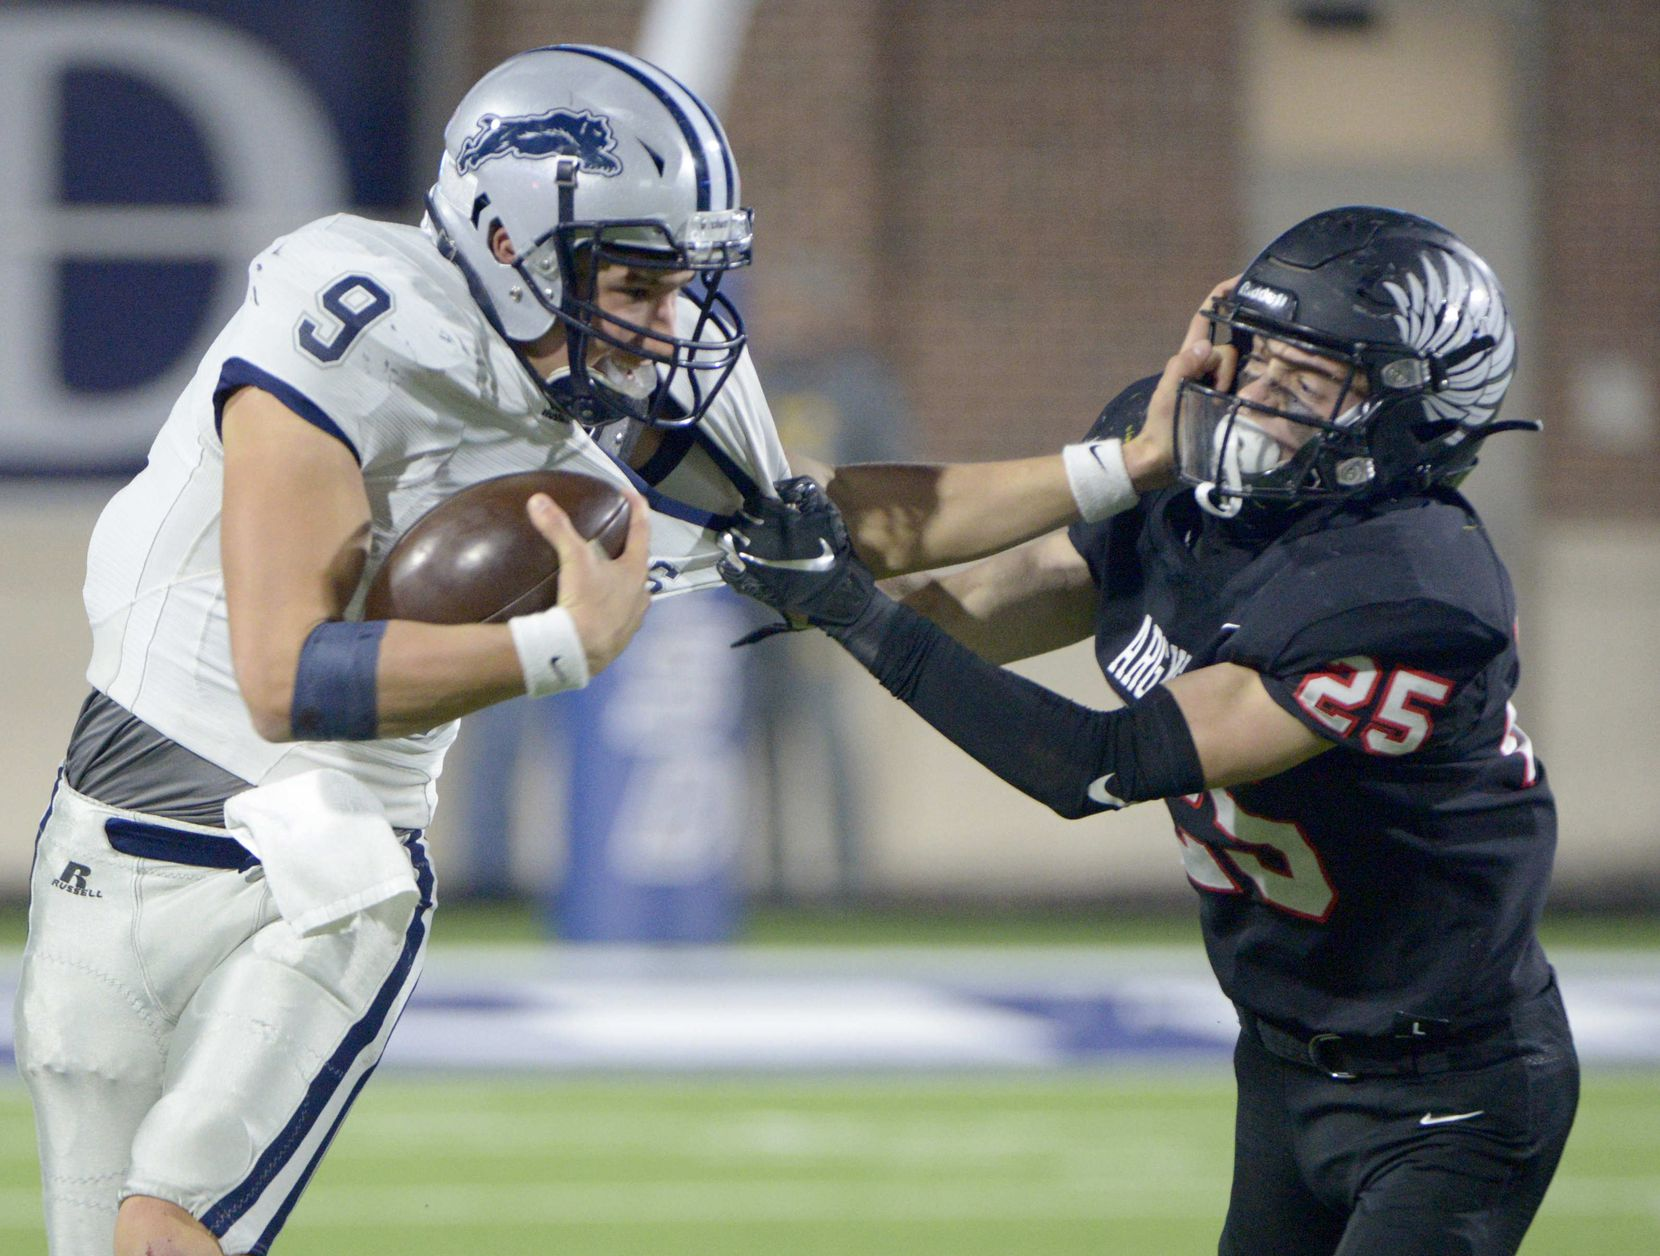 Paris' Luke Hohenberger (32) tries to fight through a tackle attempt by Argyle's Hunter Roberts (25) in the second half during a Class 4A Division I Region II final playoff football game between Paris and Argyle, Saturday, Dec. 5, 2020, in McKinney,  Texas. (Matt Strasen/Special Contributor)